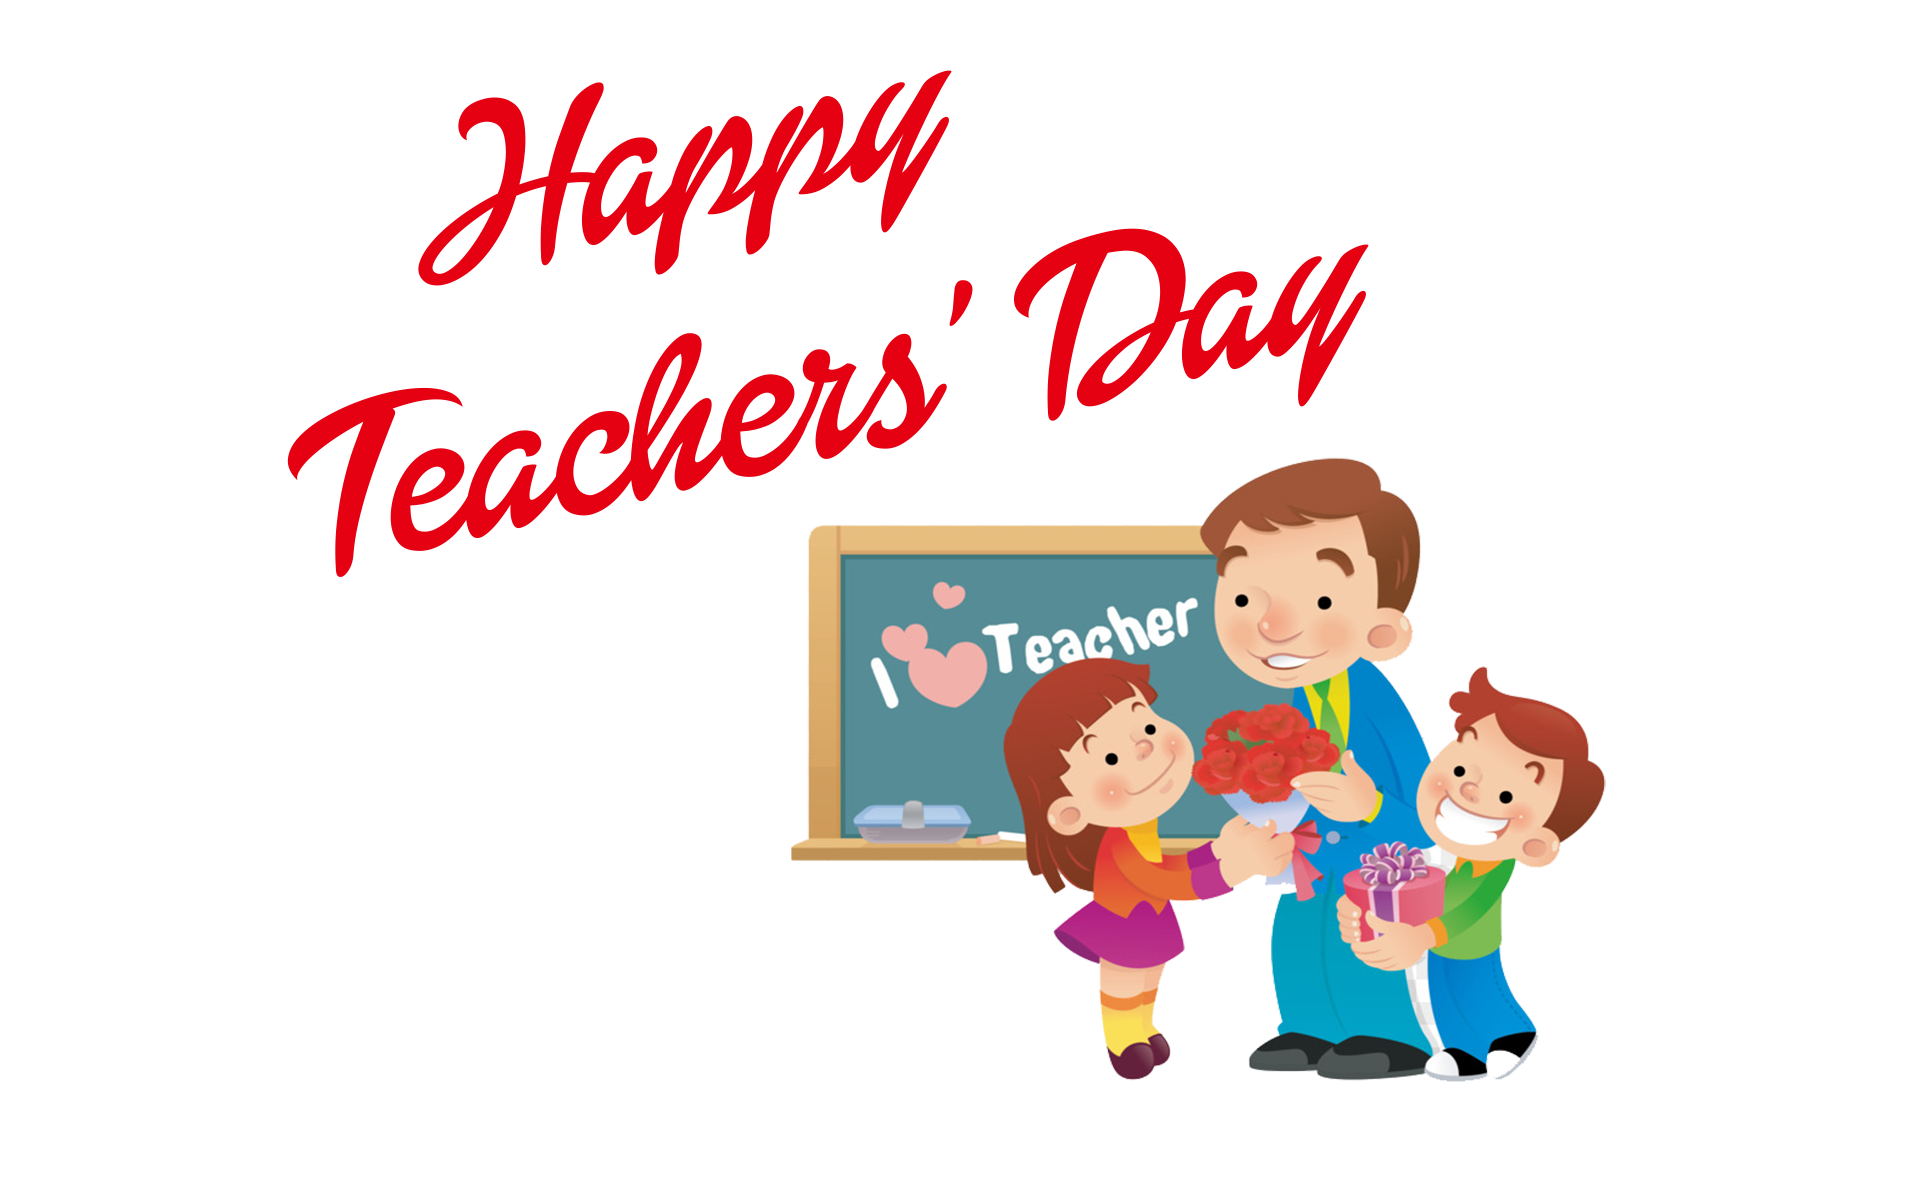 Transparent teacher teacher's day. Happy teachers png hd